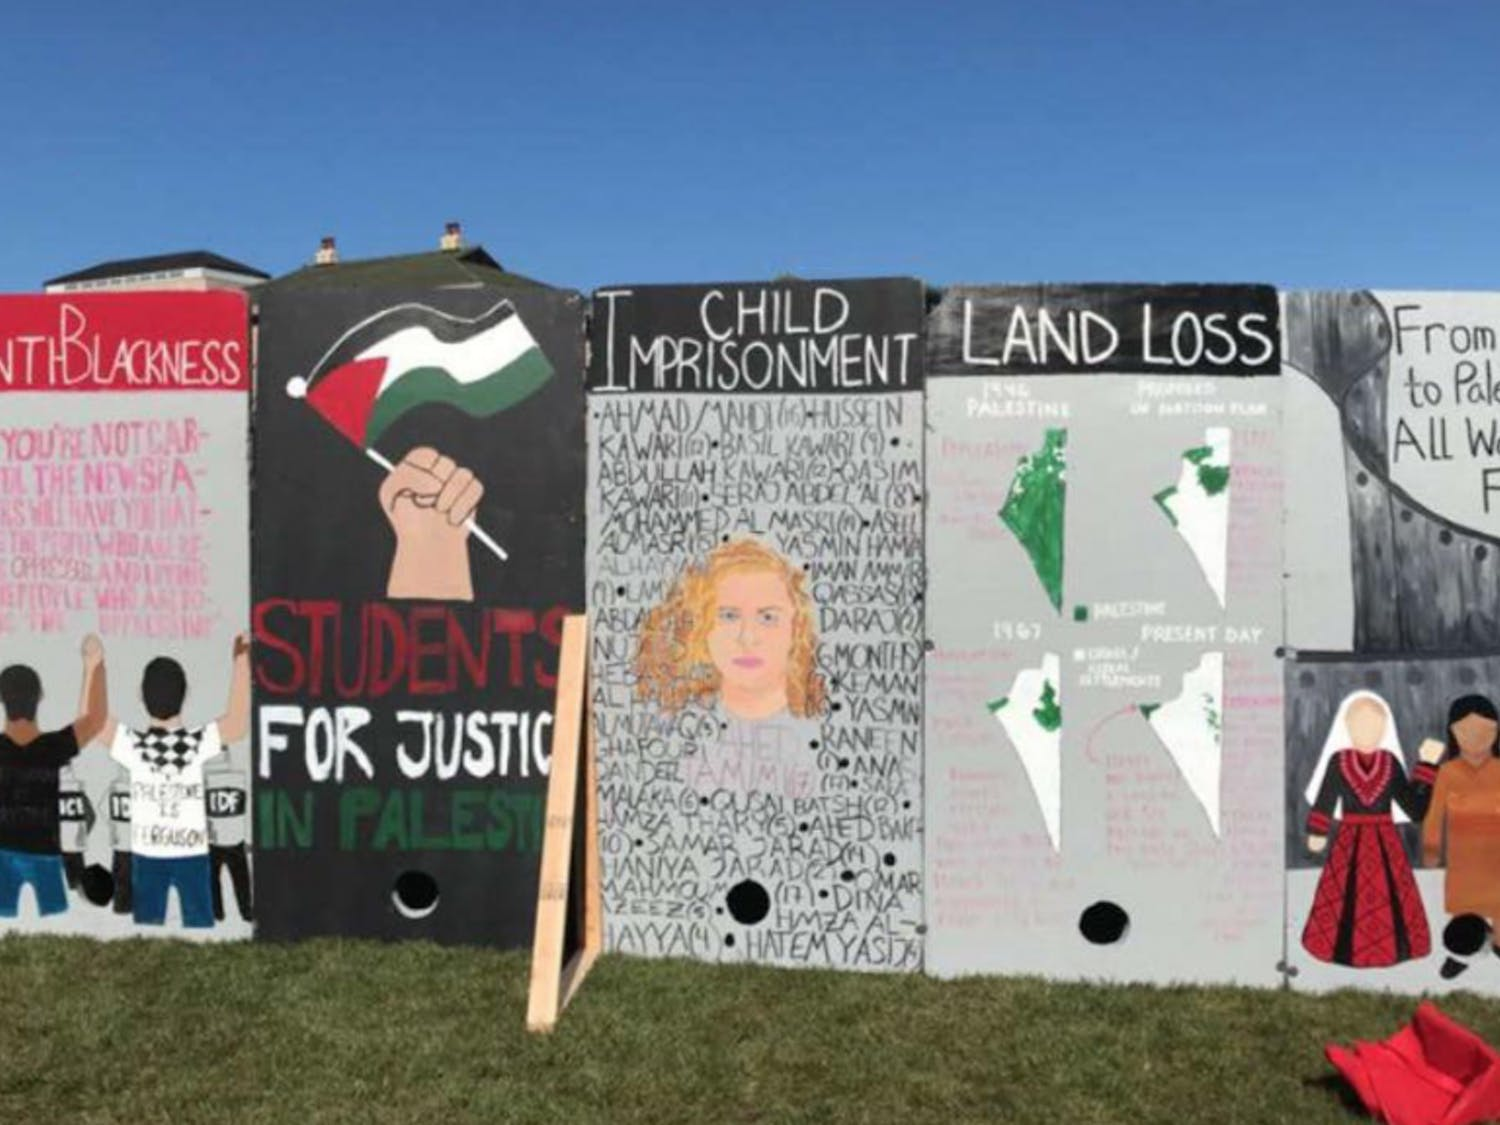 The display panels at the Library Mall demonstration painted Israel in an unfair light.